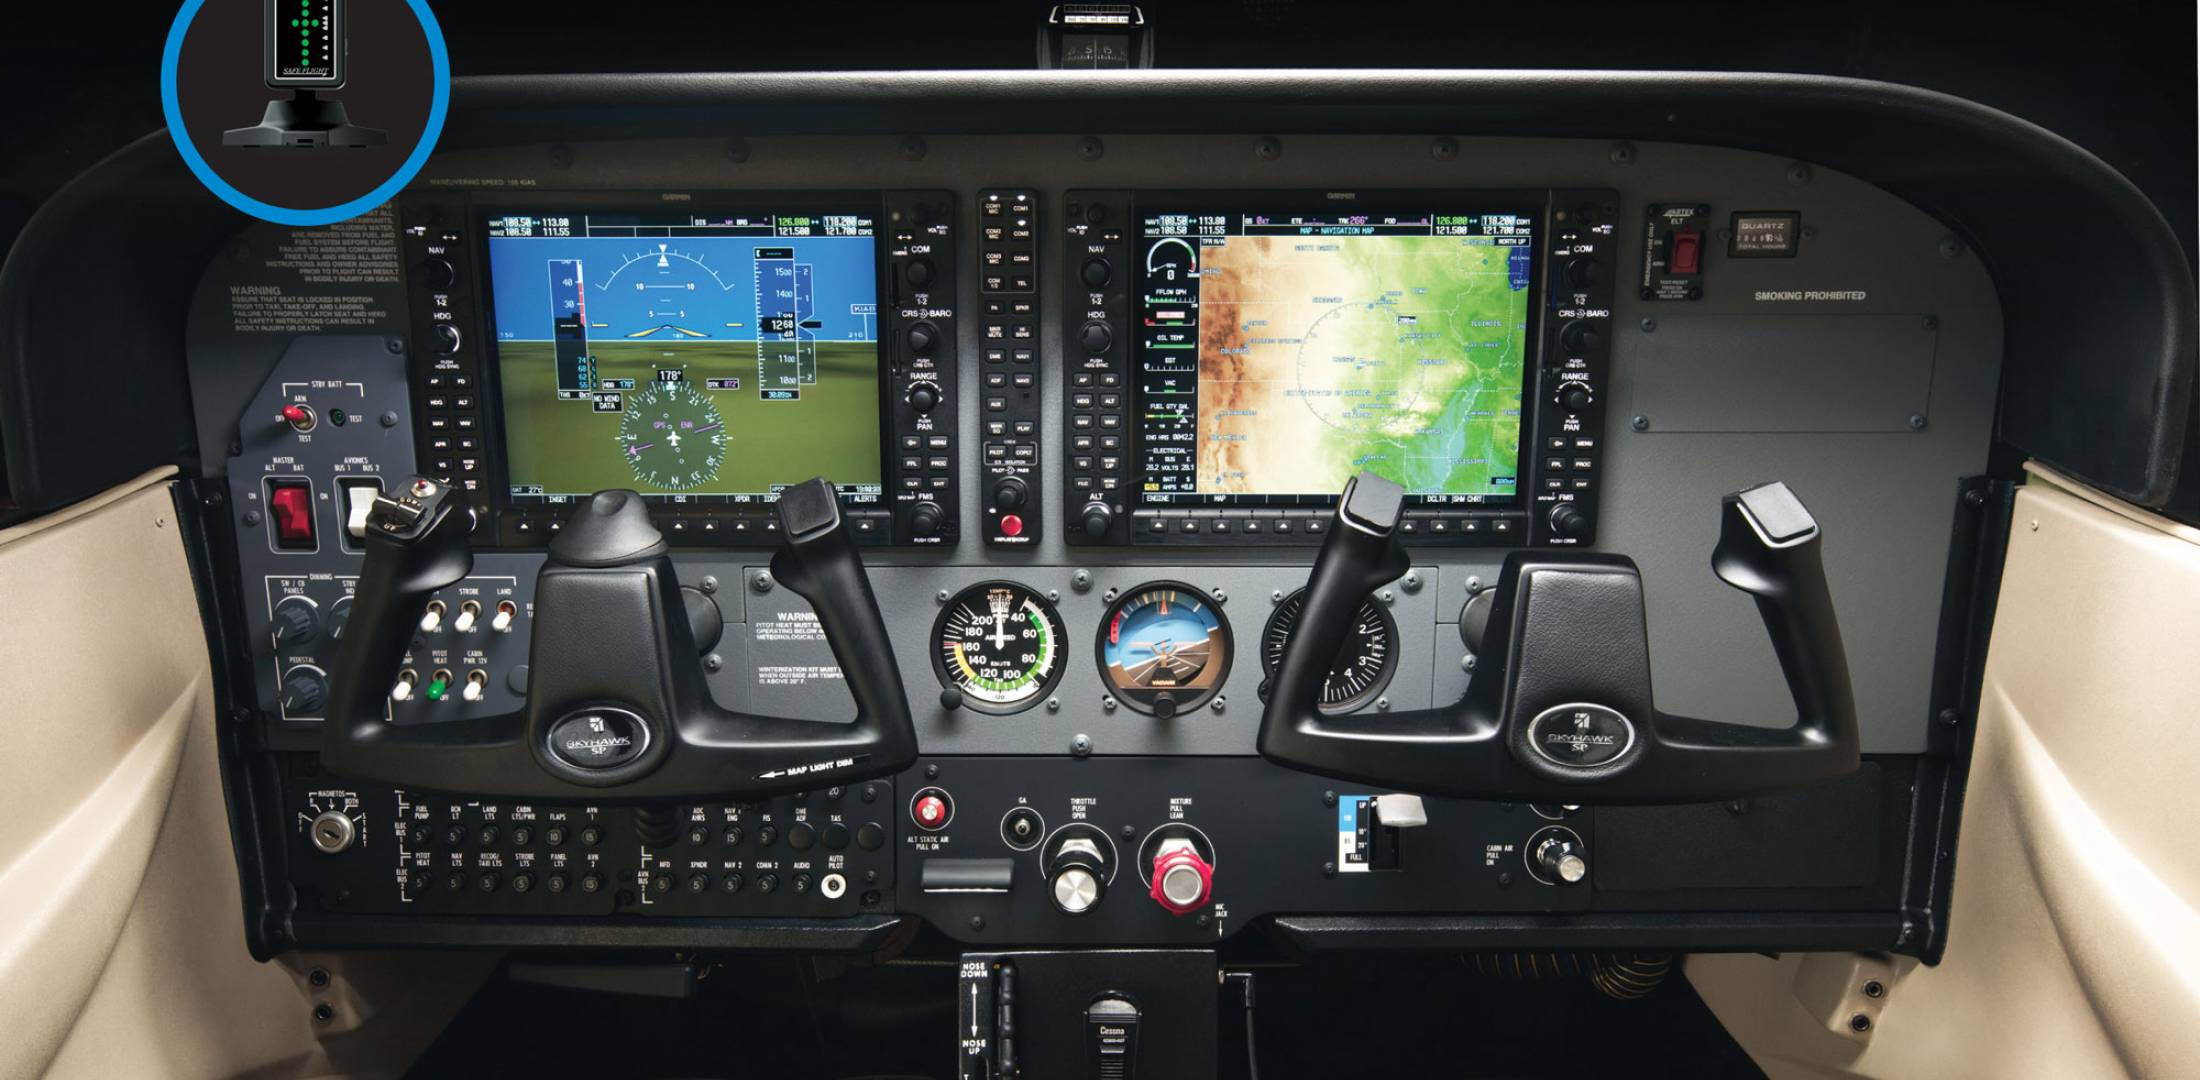 Cessna 172 with AoA system